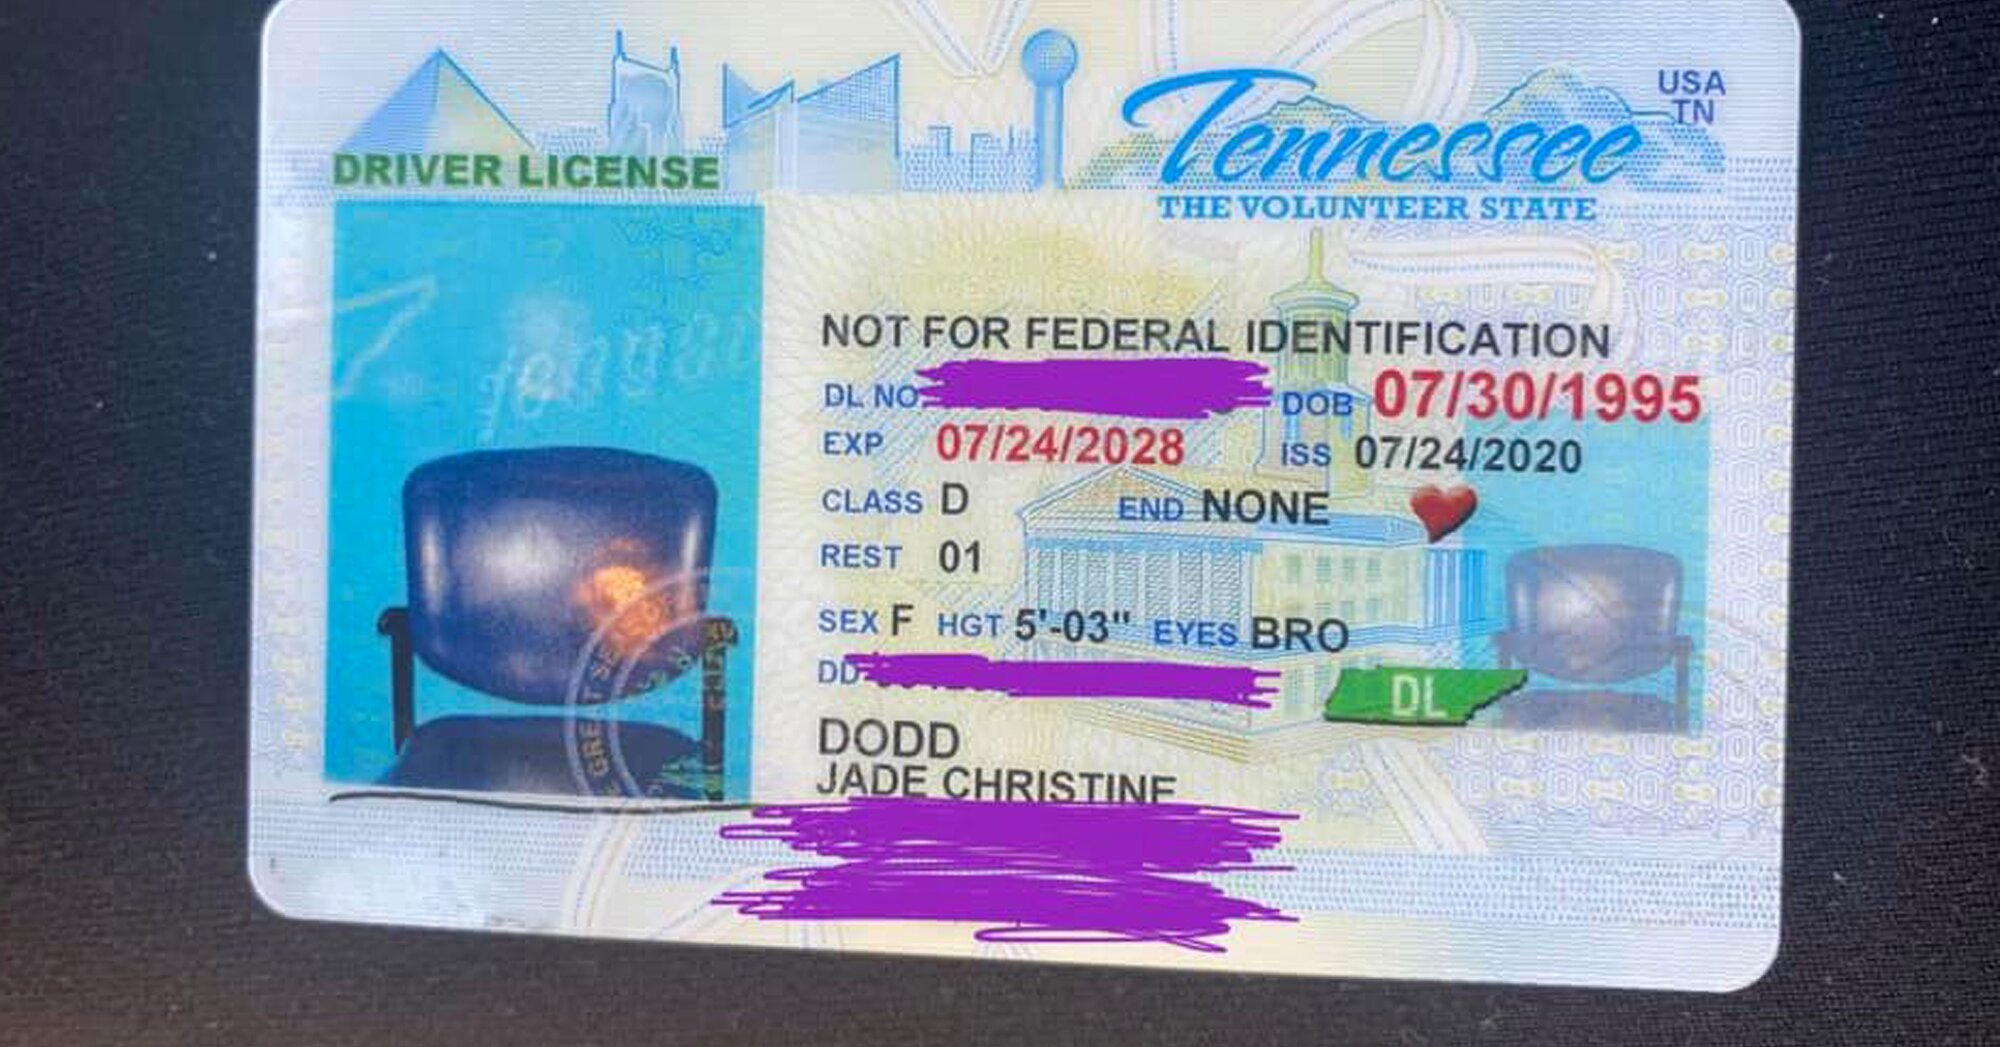 Tenn. Woman Renews Driver's License – Only to Receive ID with Photo of Empty Chair